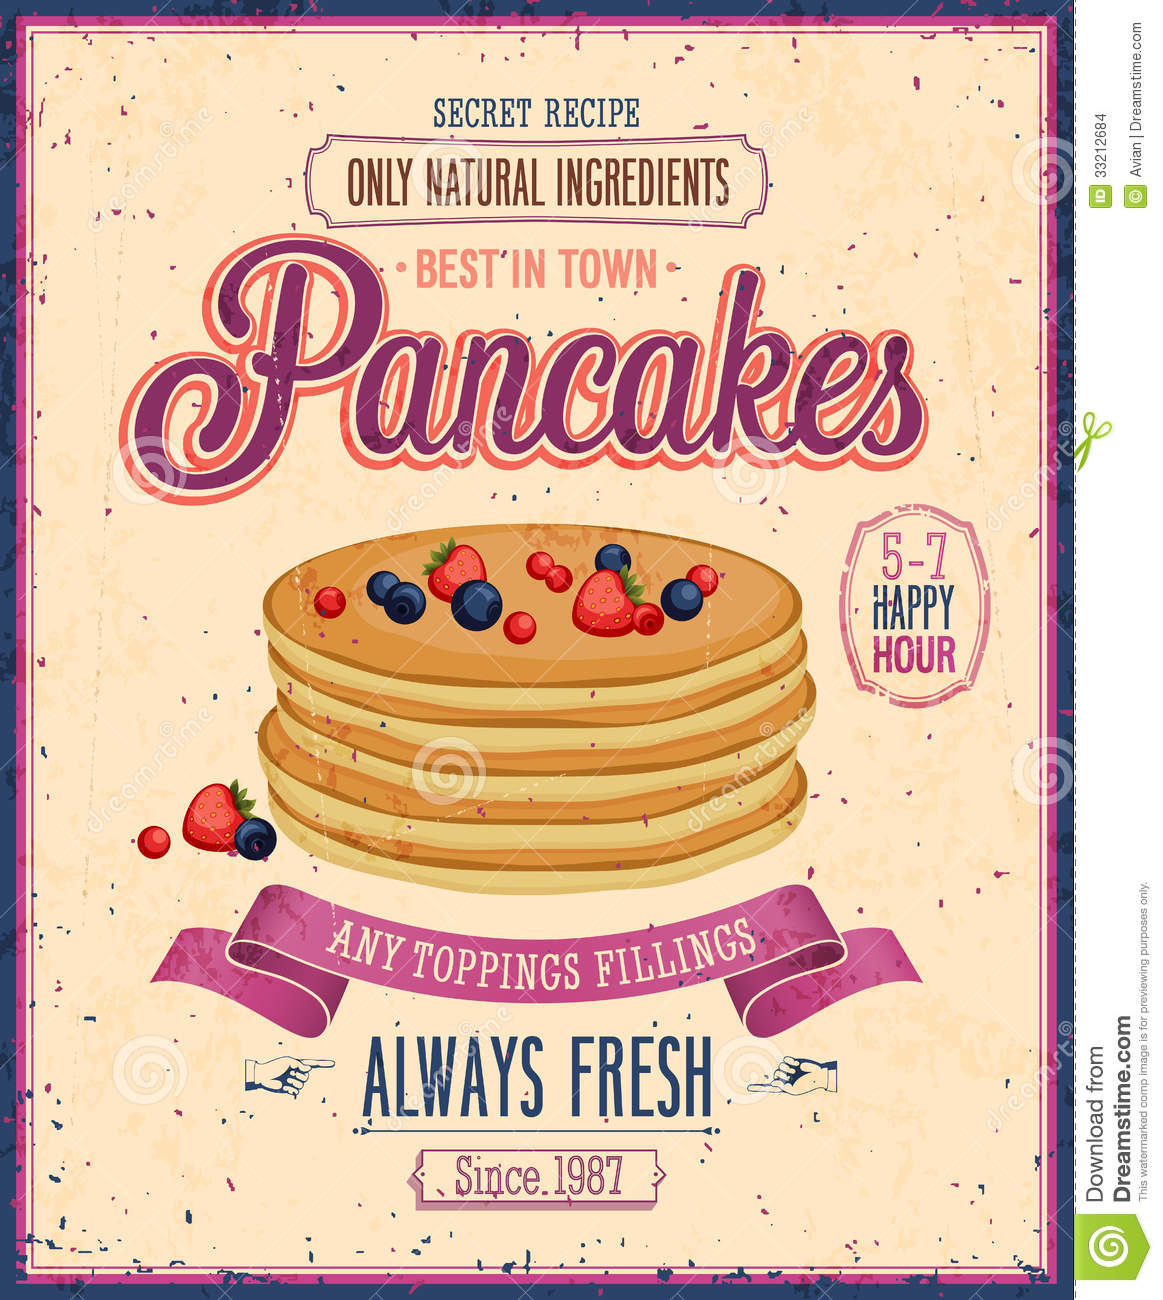 Vintage Pancakes Poster. Stock Images - Image: 33212684